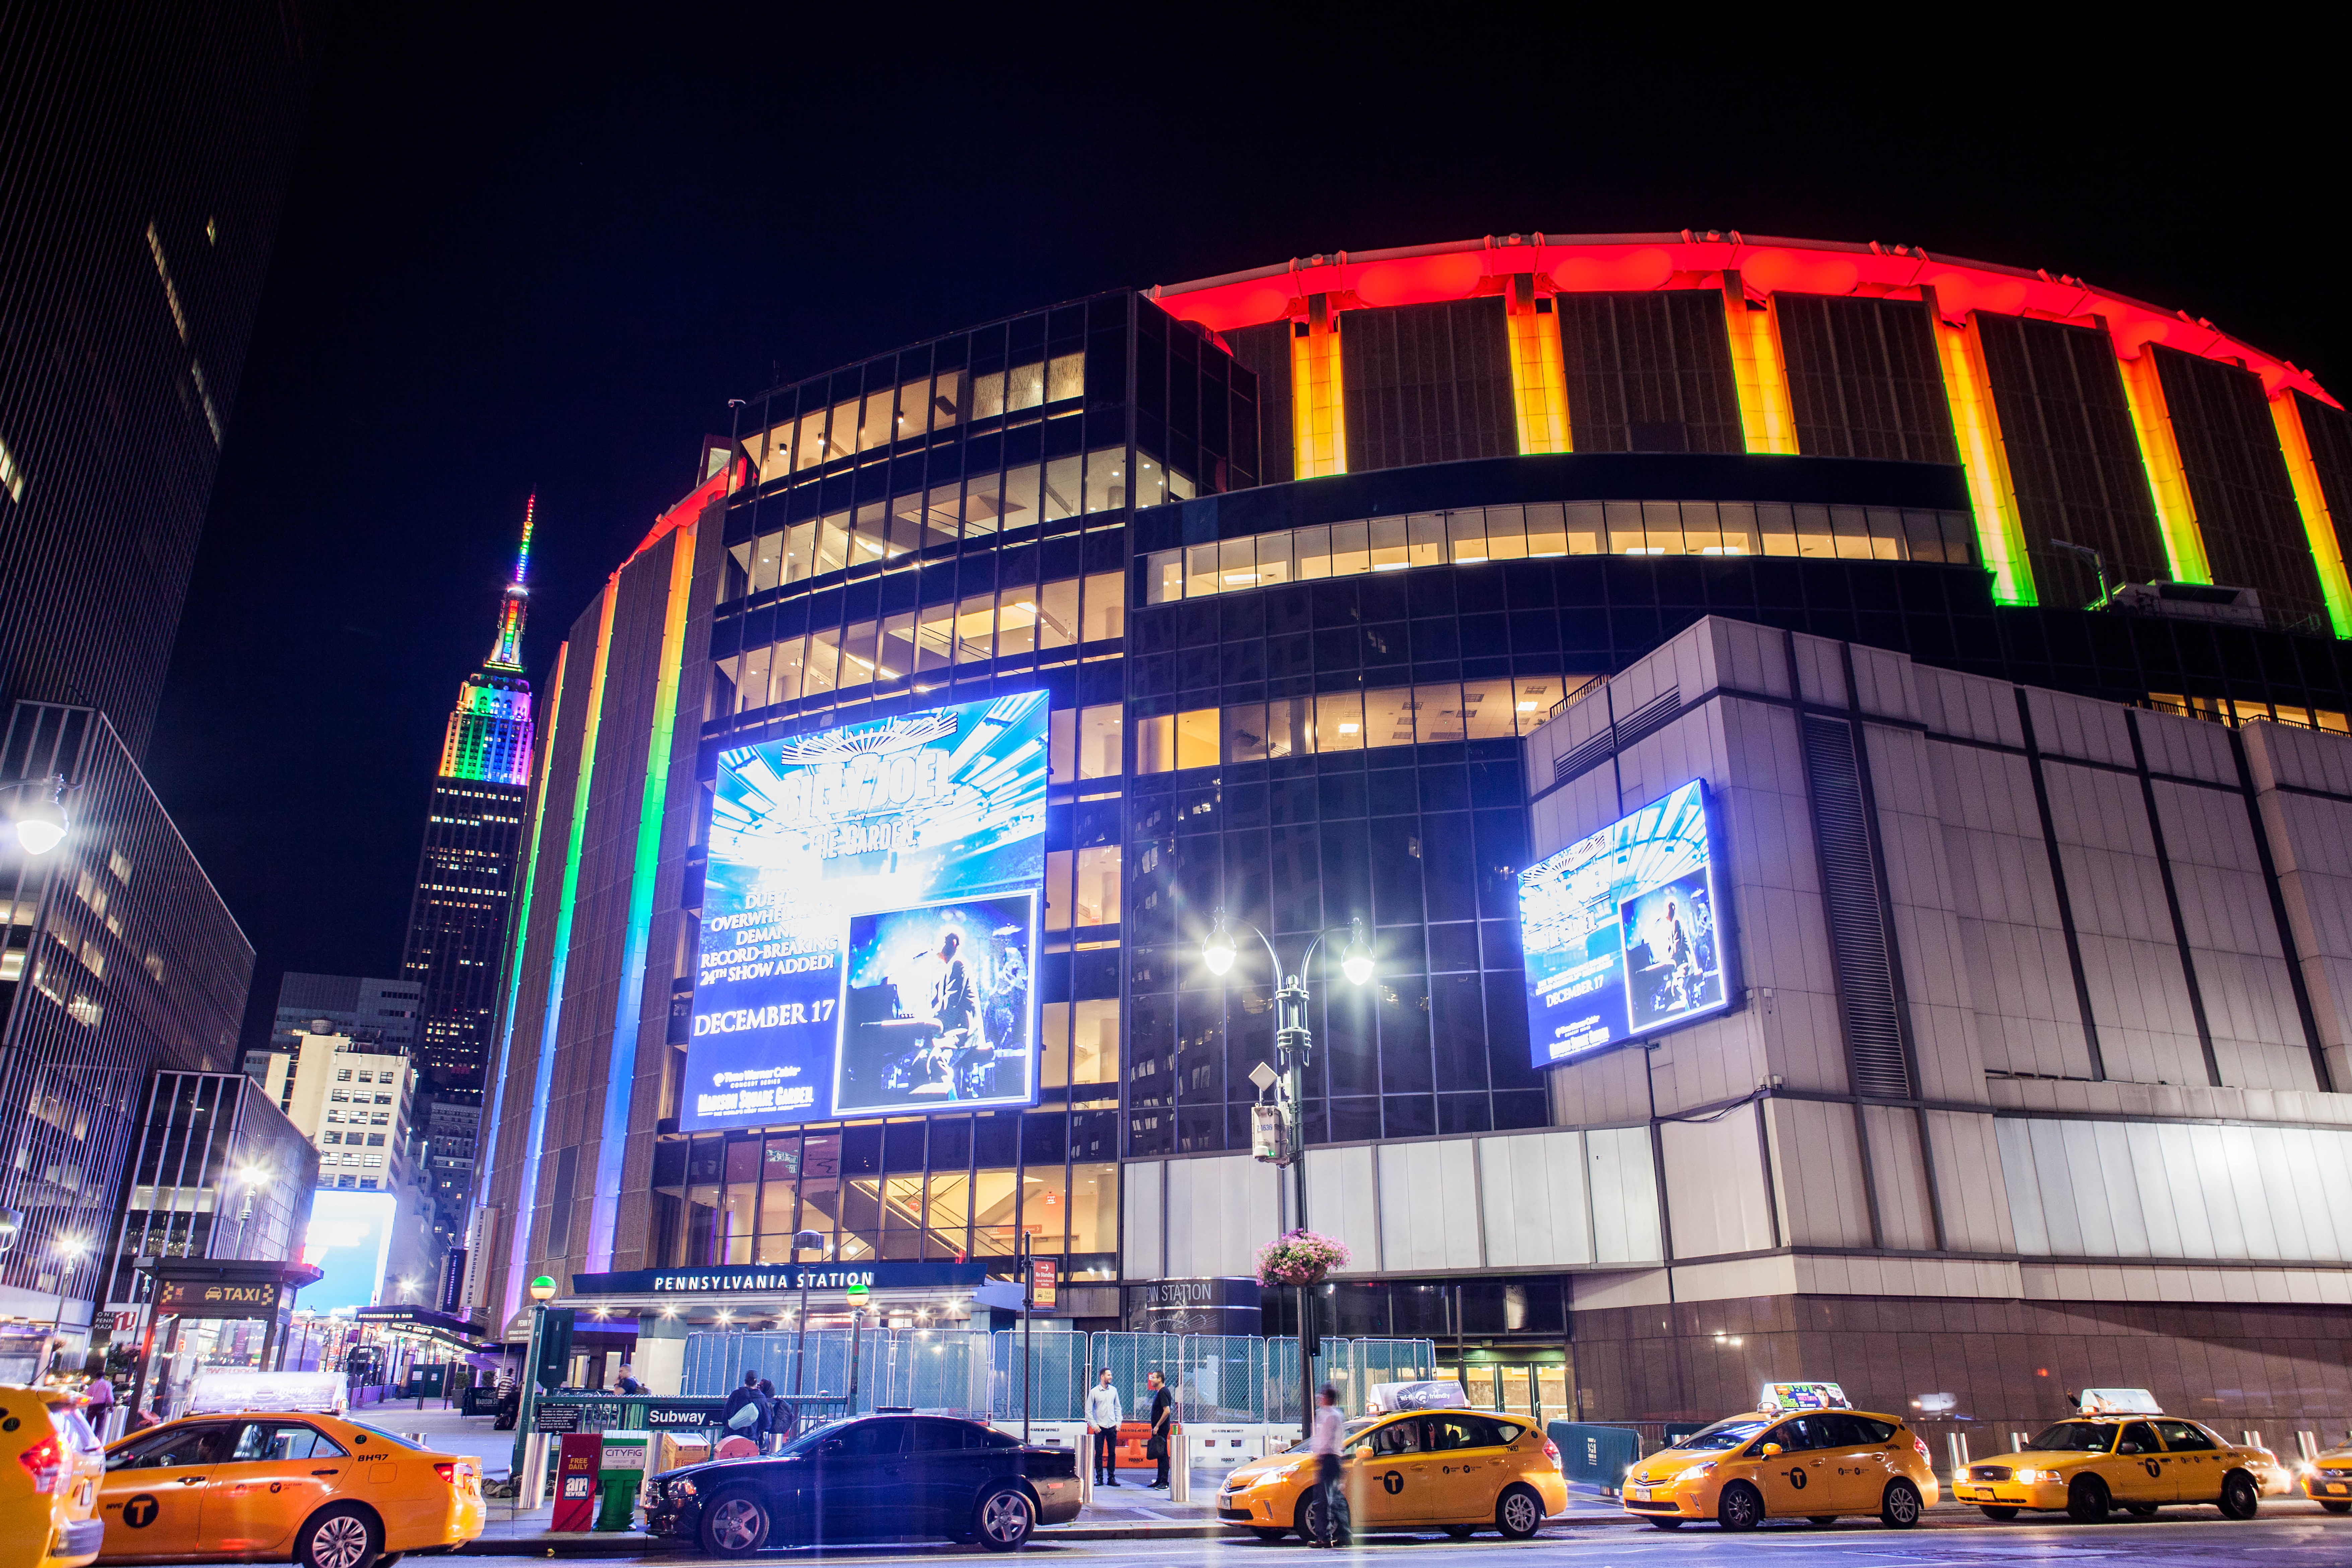 File:Empire State Building And Madison Square Garden In Rainbow Colors For  Gay Pride 2015